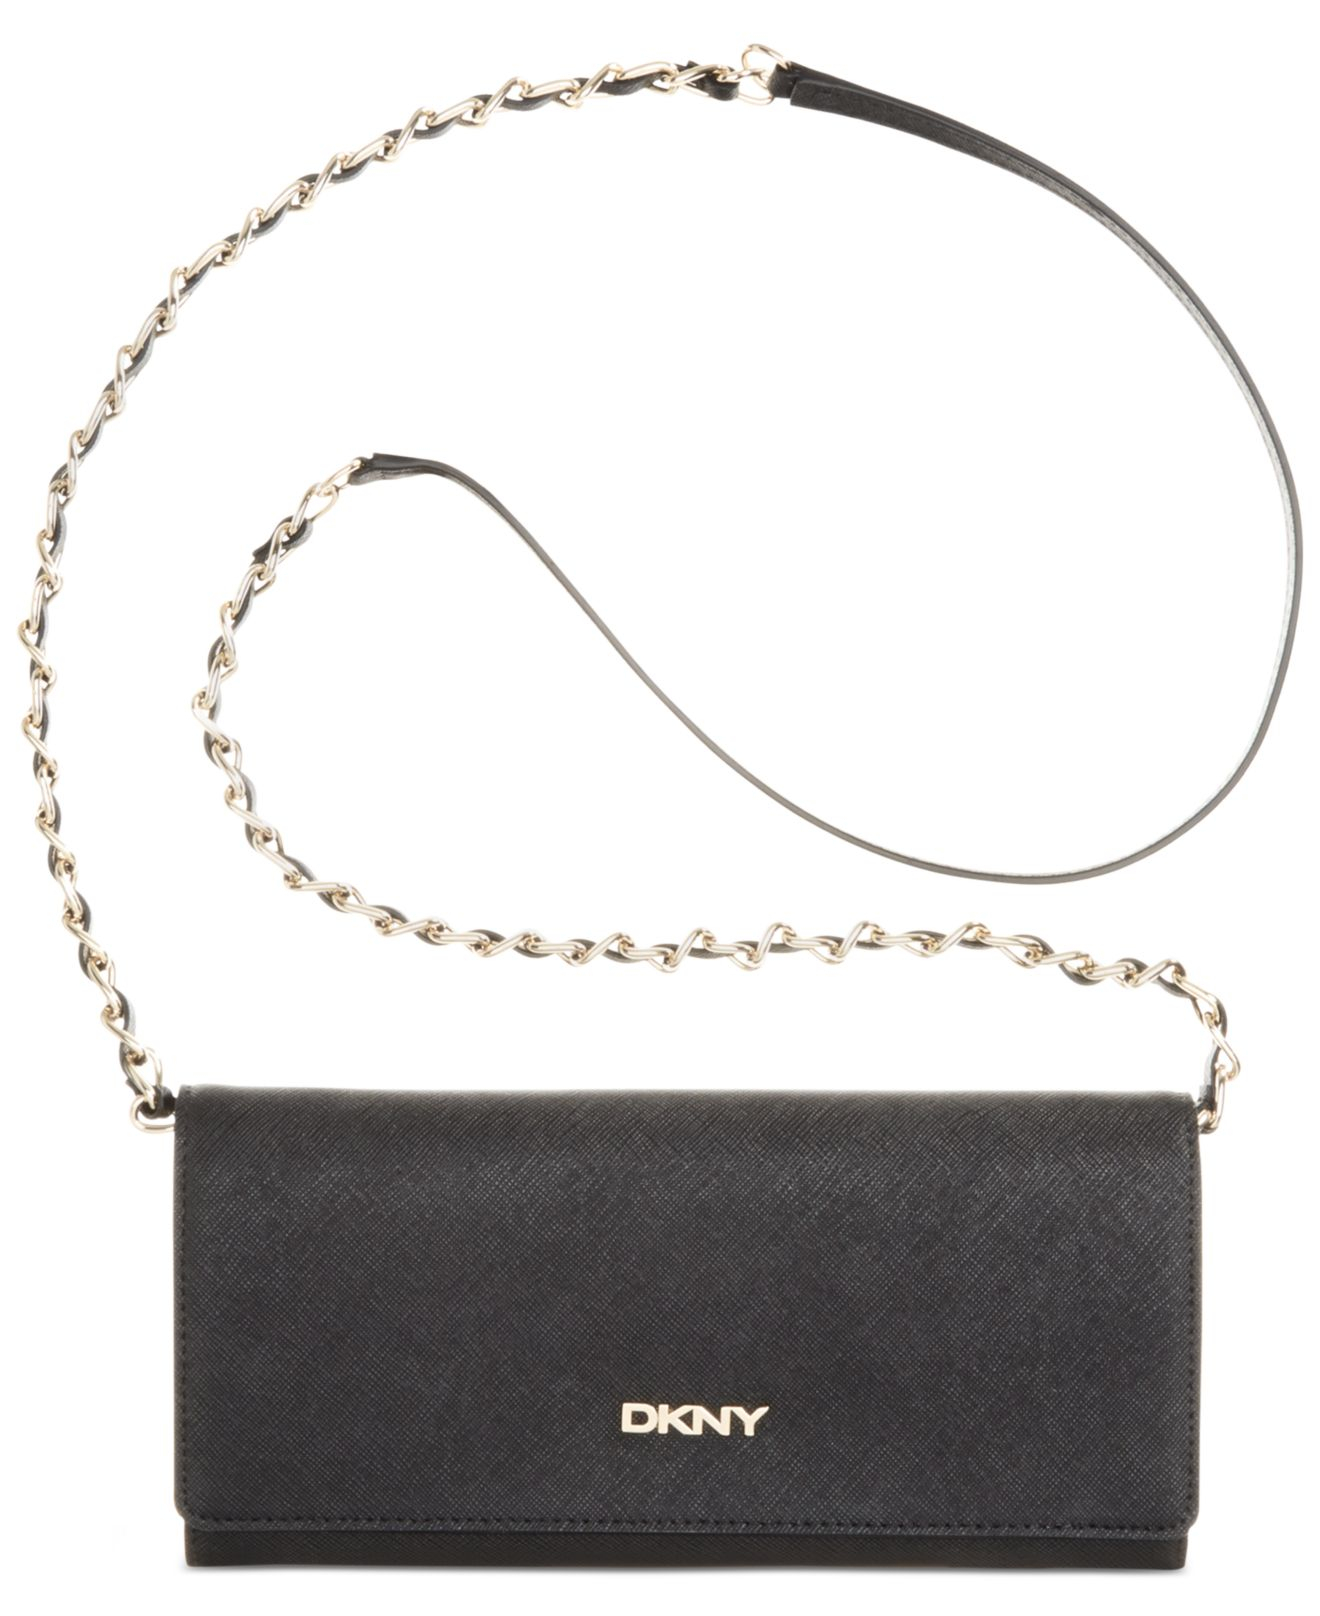 b7ea8c8f8f Lyst Dkny Bryant Park Saffiano Leather Wallet Clutch With Chain. Saffiano  Tote Dkny